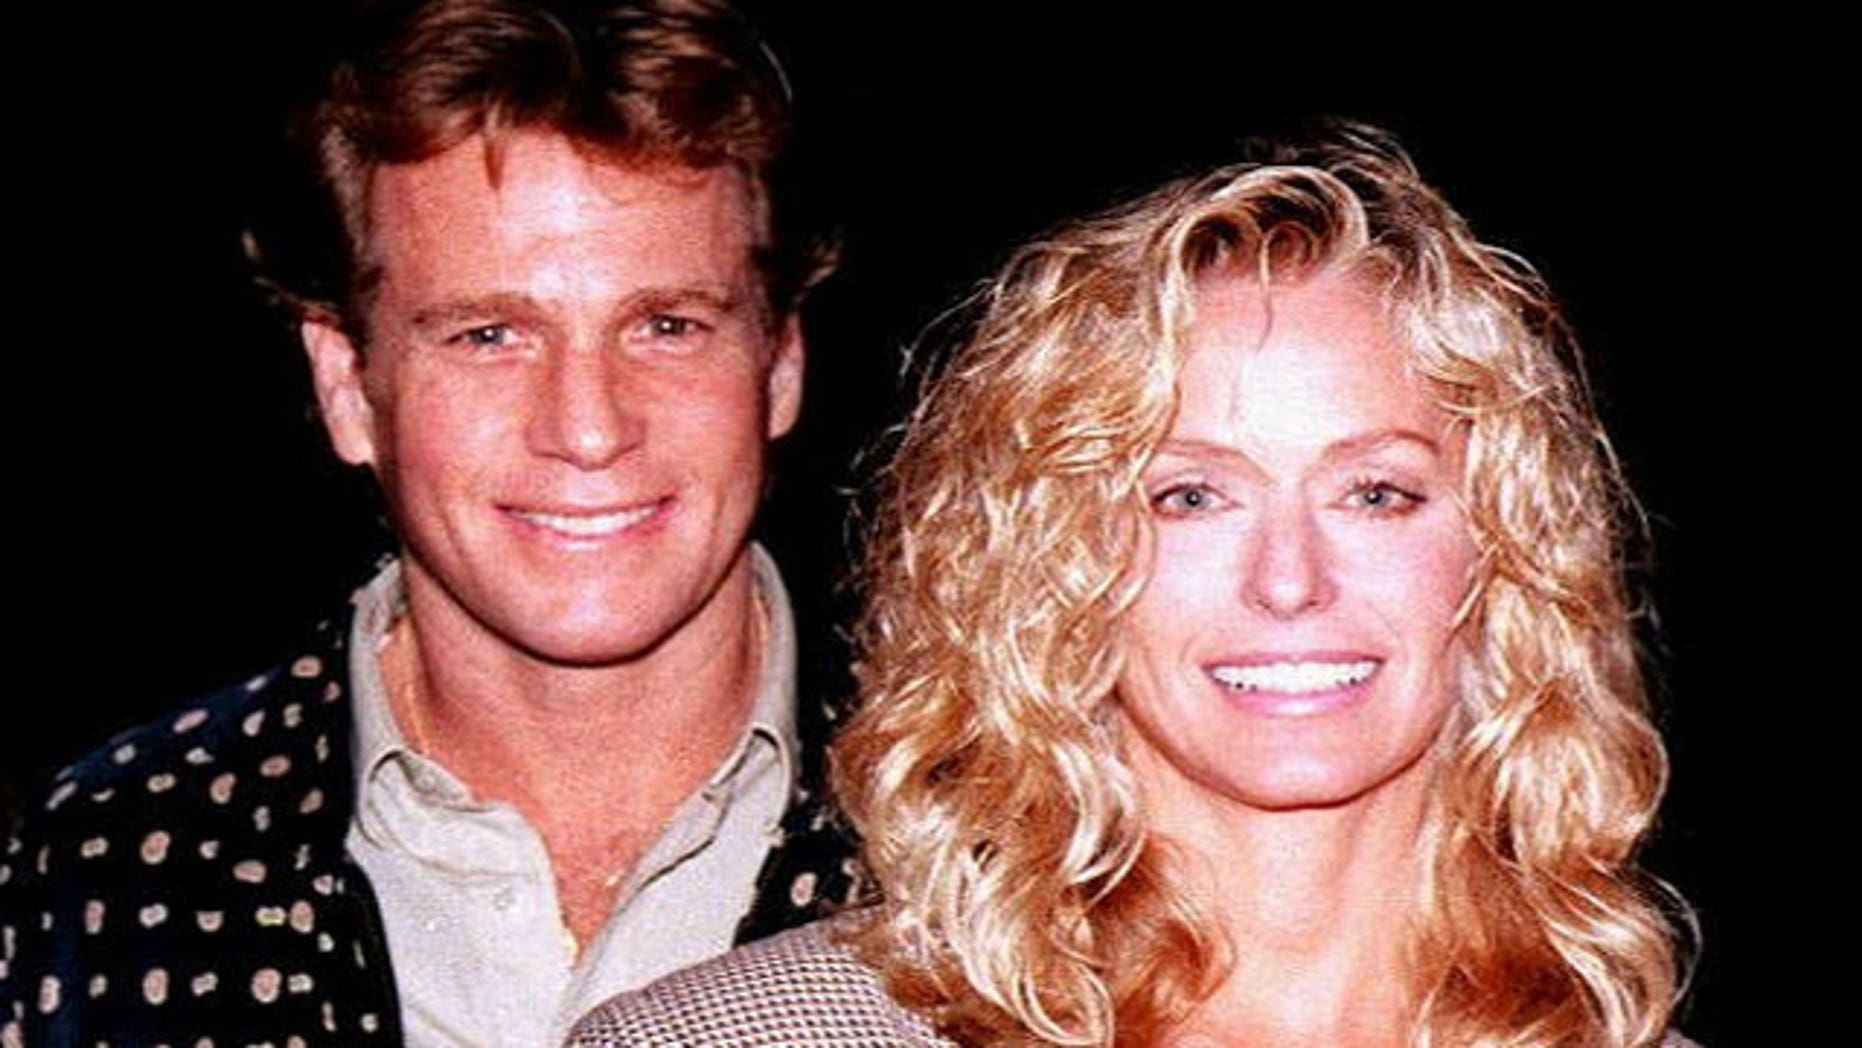 1987: Ryan O'Neal and Farrah Fawcett are seen together in a file photo.